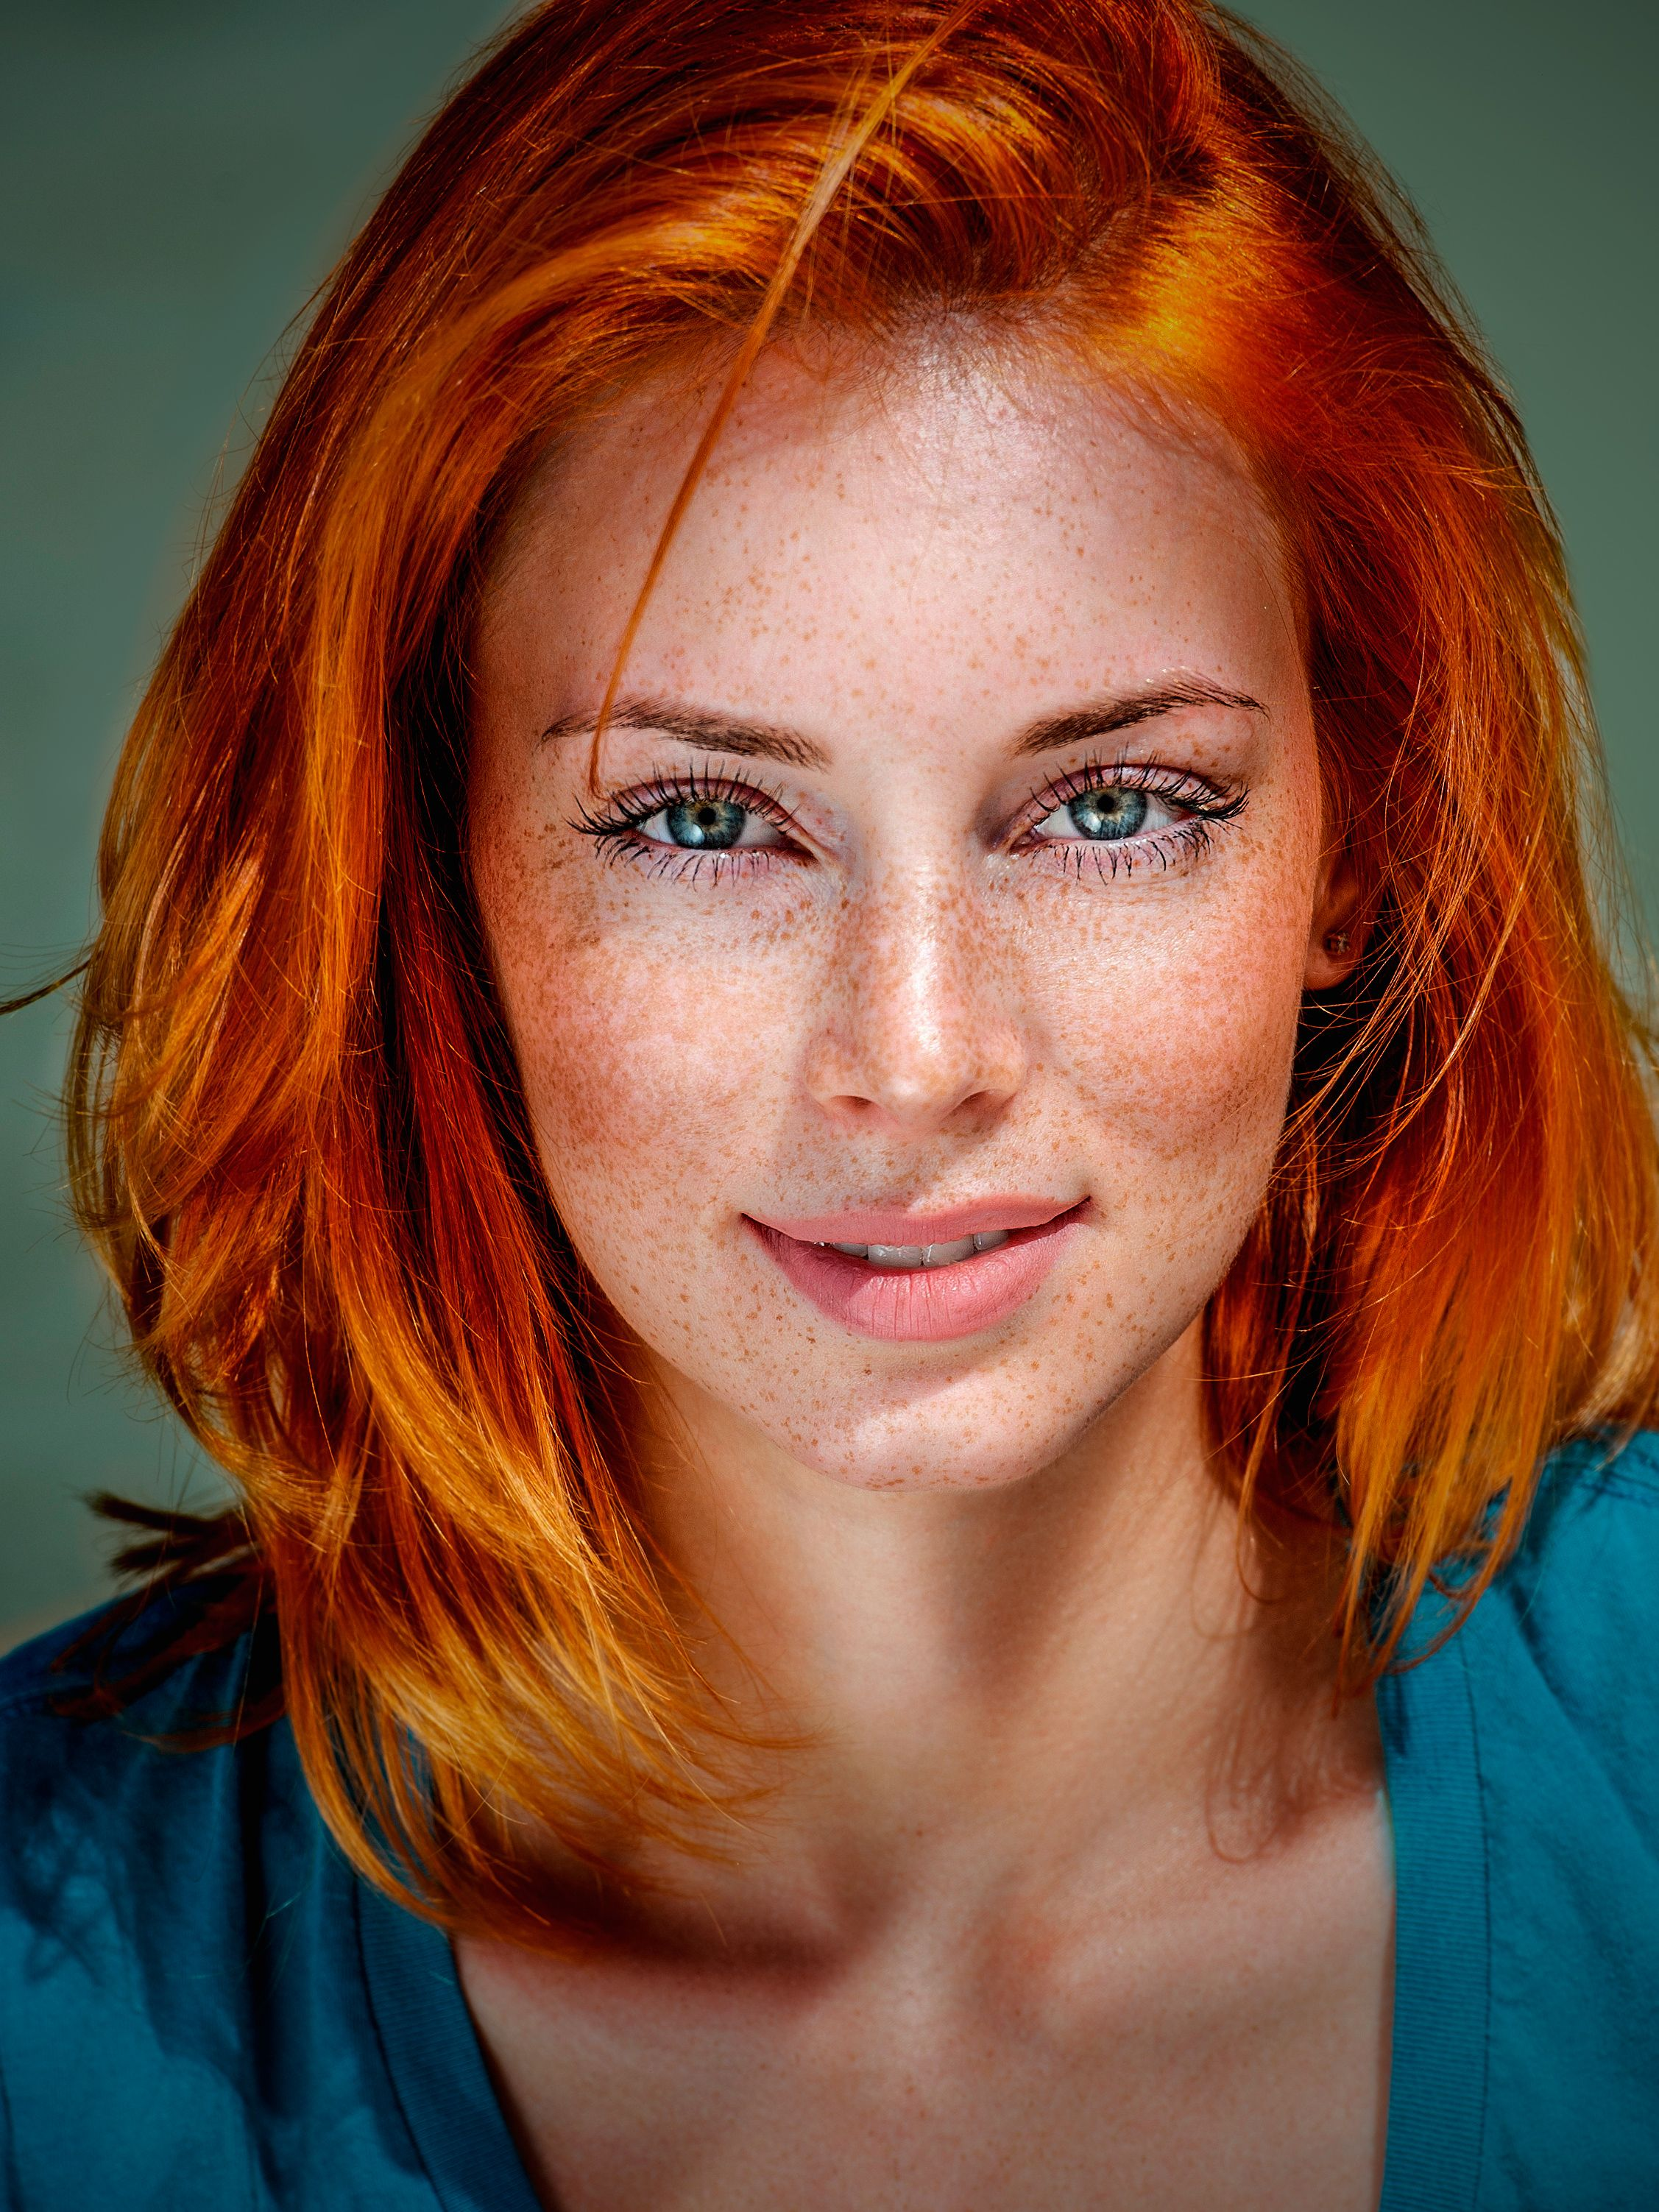 403 Forbidden Most Beautiful Eyes Girls With Red Hair Red Hair Woman